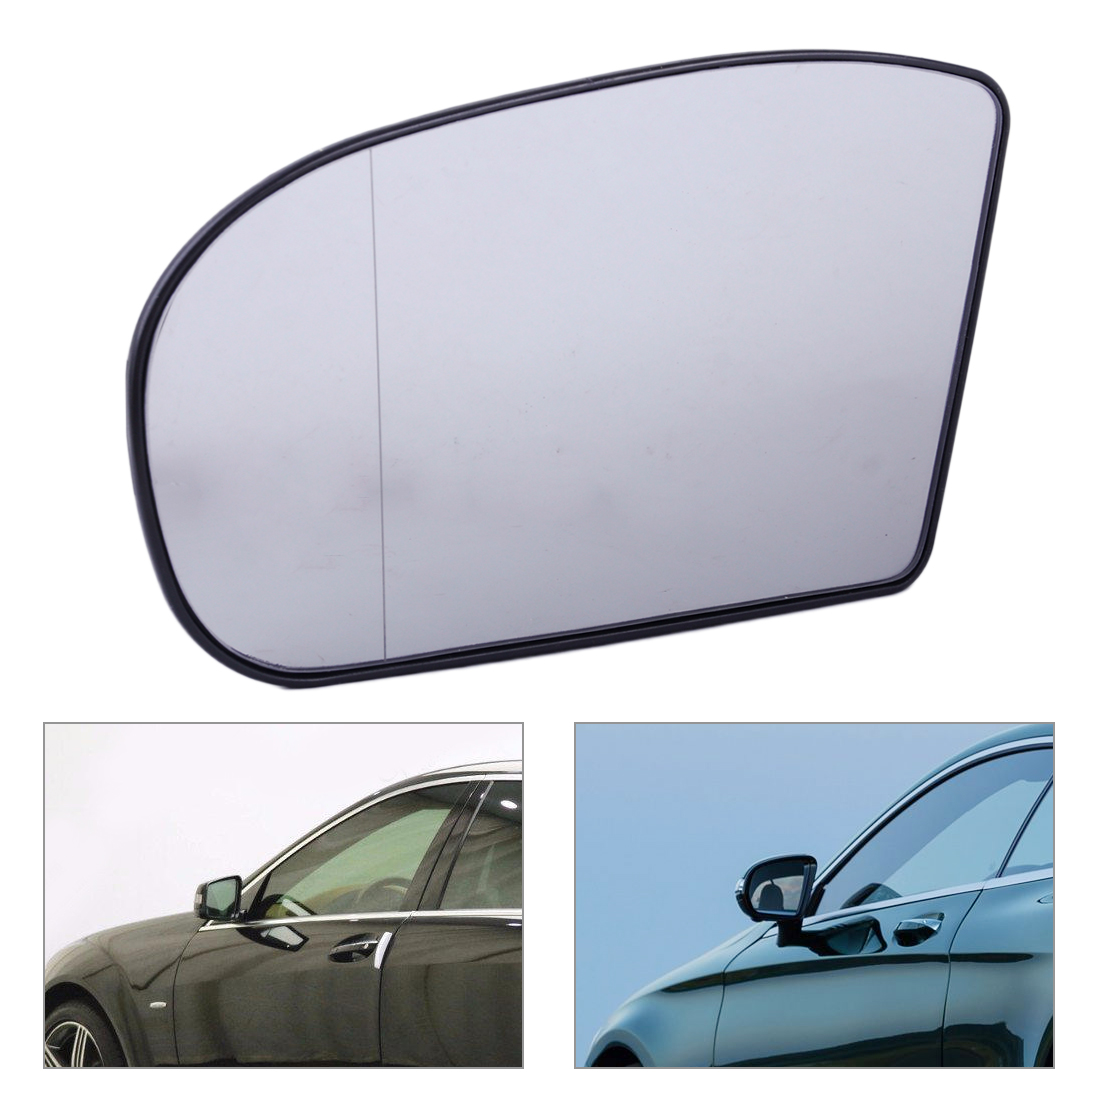 beler Left Heated Door Mirror Glass Aspherical Wide Angle Fit For Mercedes E class C Class W211 W203 2038100121 203 810 01 21